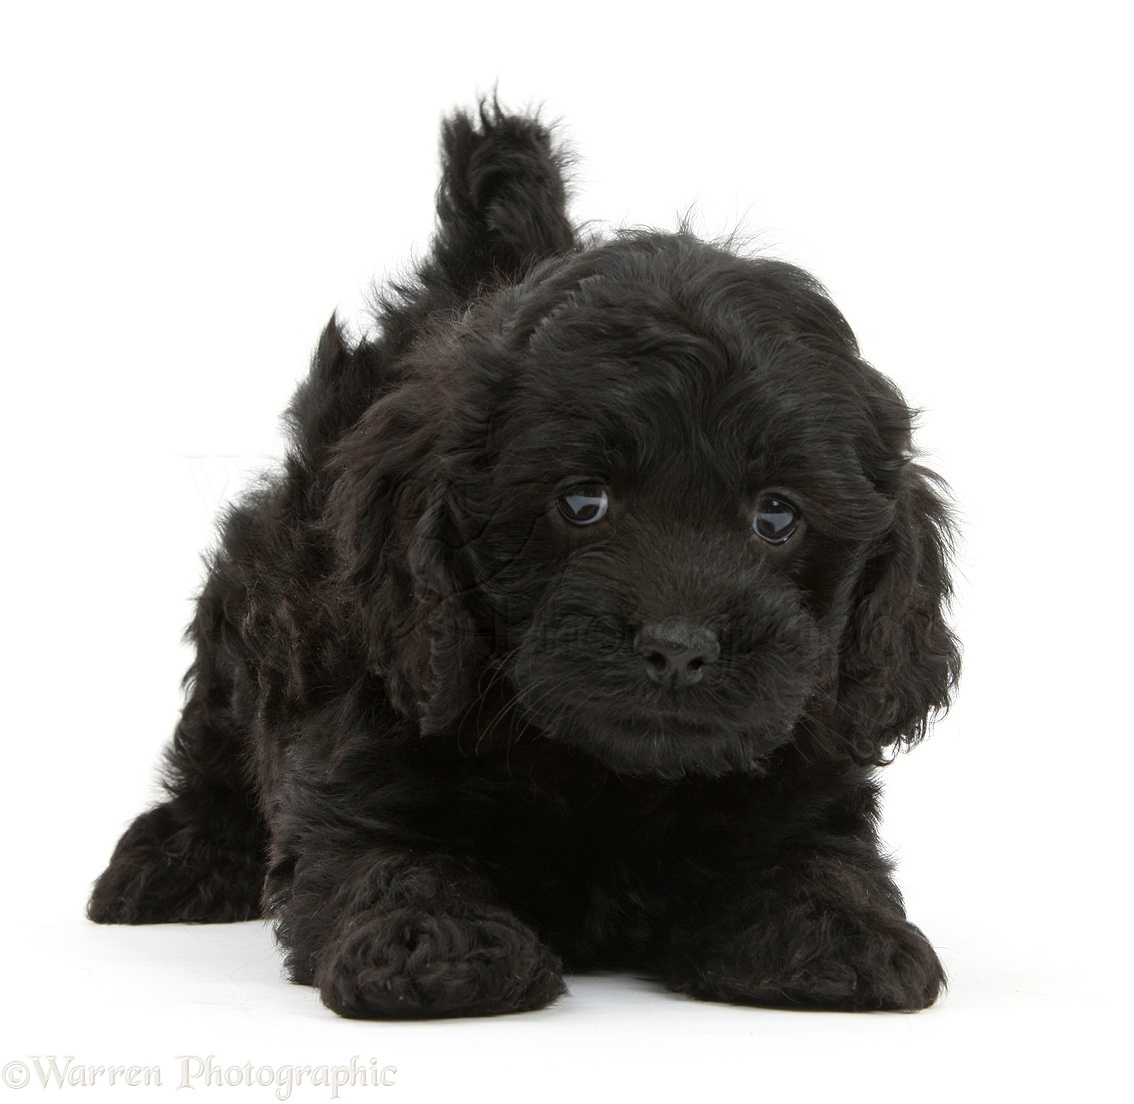 Dog Playful Black Cockapoo Pup 6 Weeks Old Photo Wp41566